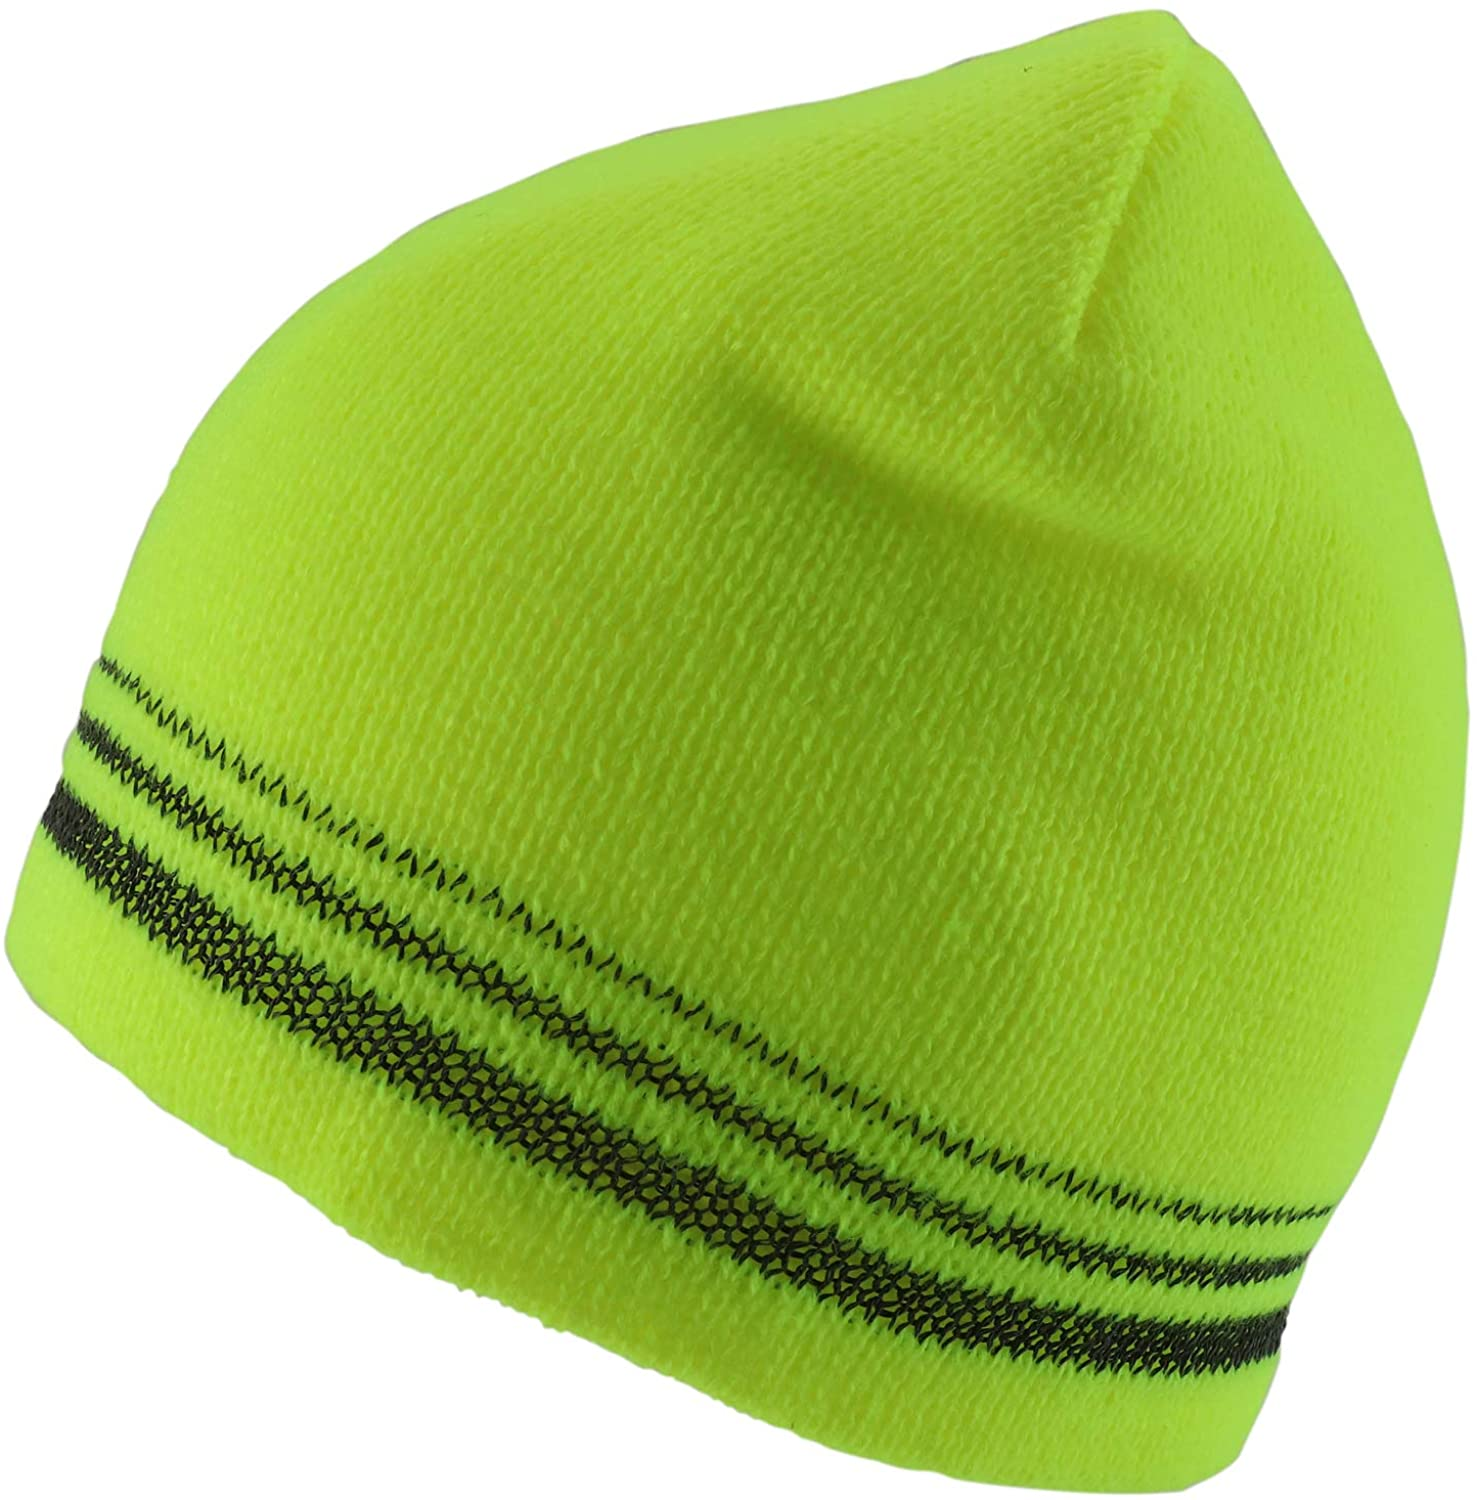 Trendy Apparel Shop 3 Reflective Stripes High Visibility Safety Beanie Hat